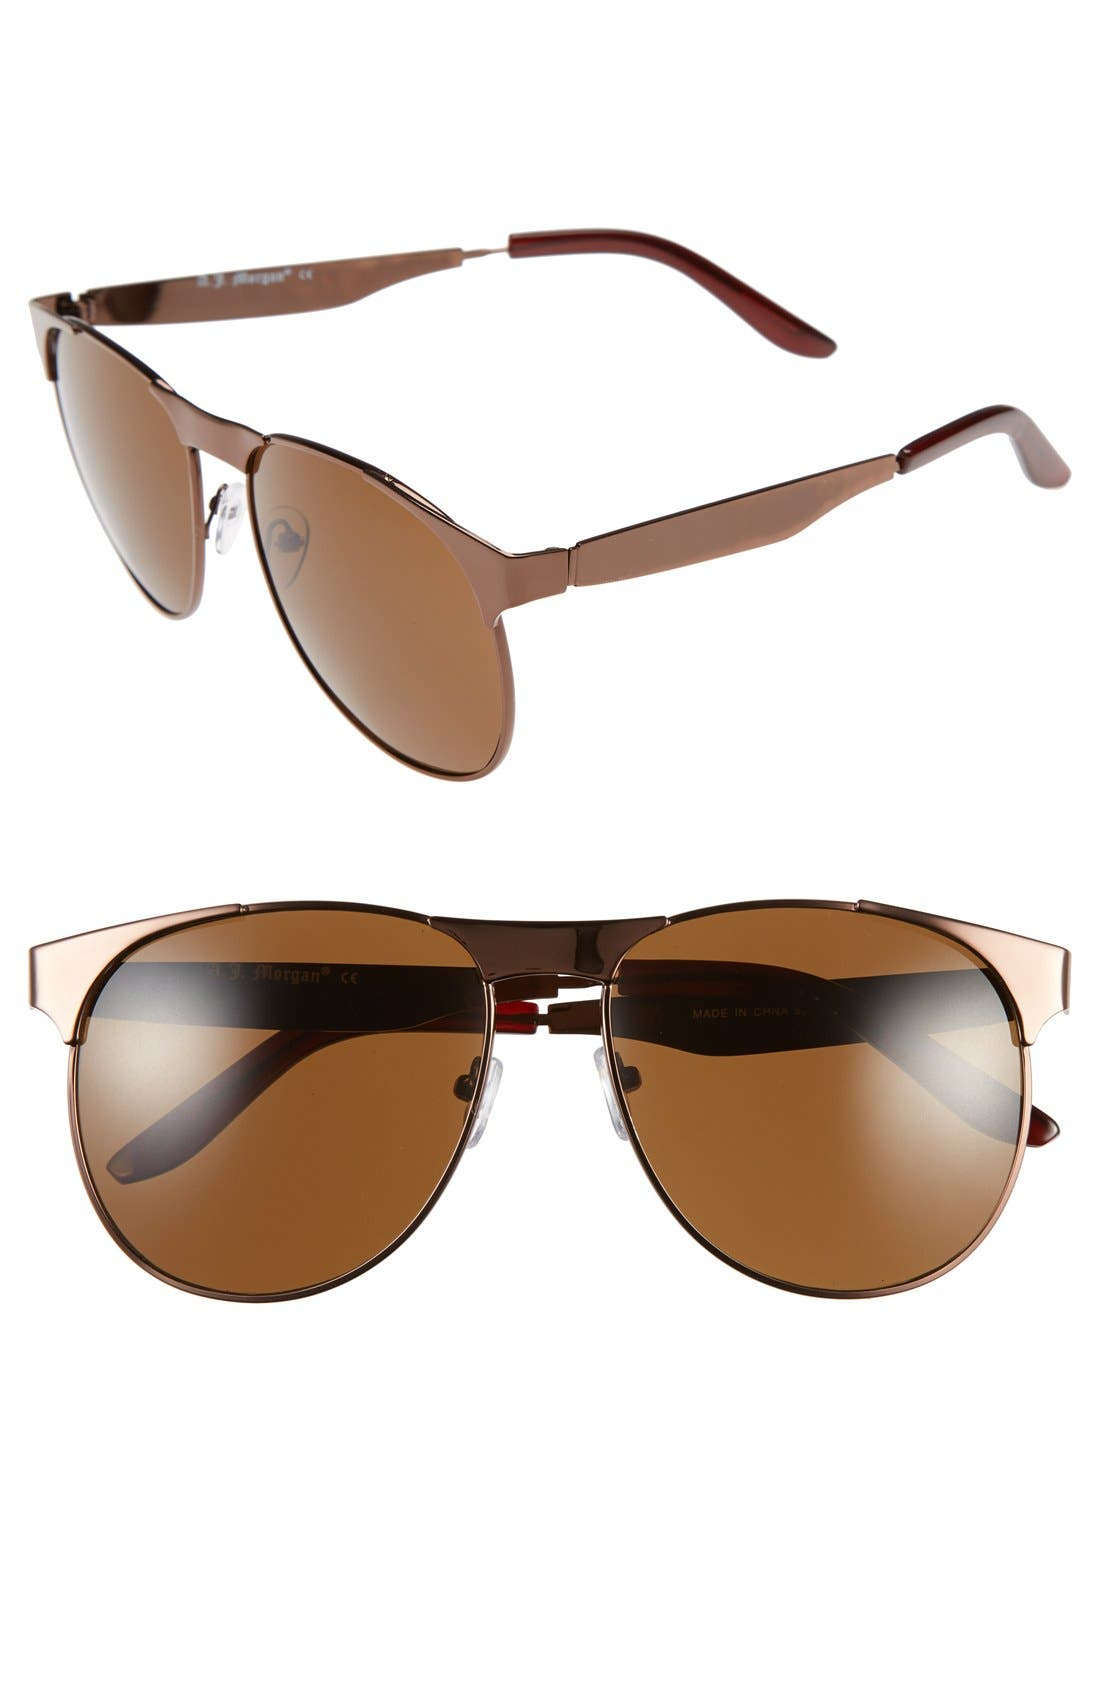 Alternate Image 1 Selected - A.J. Morgan 'Straight' 58mm Retro Sunglasses